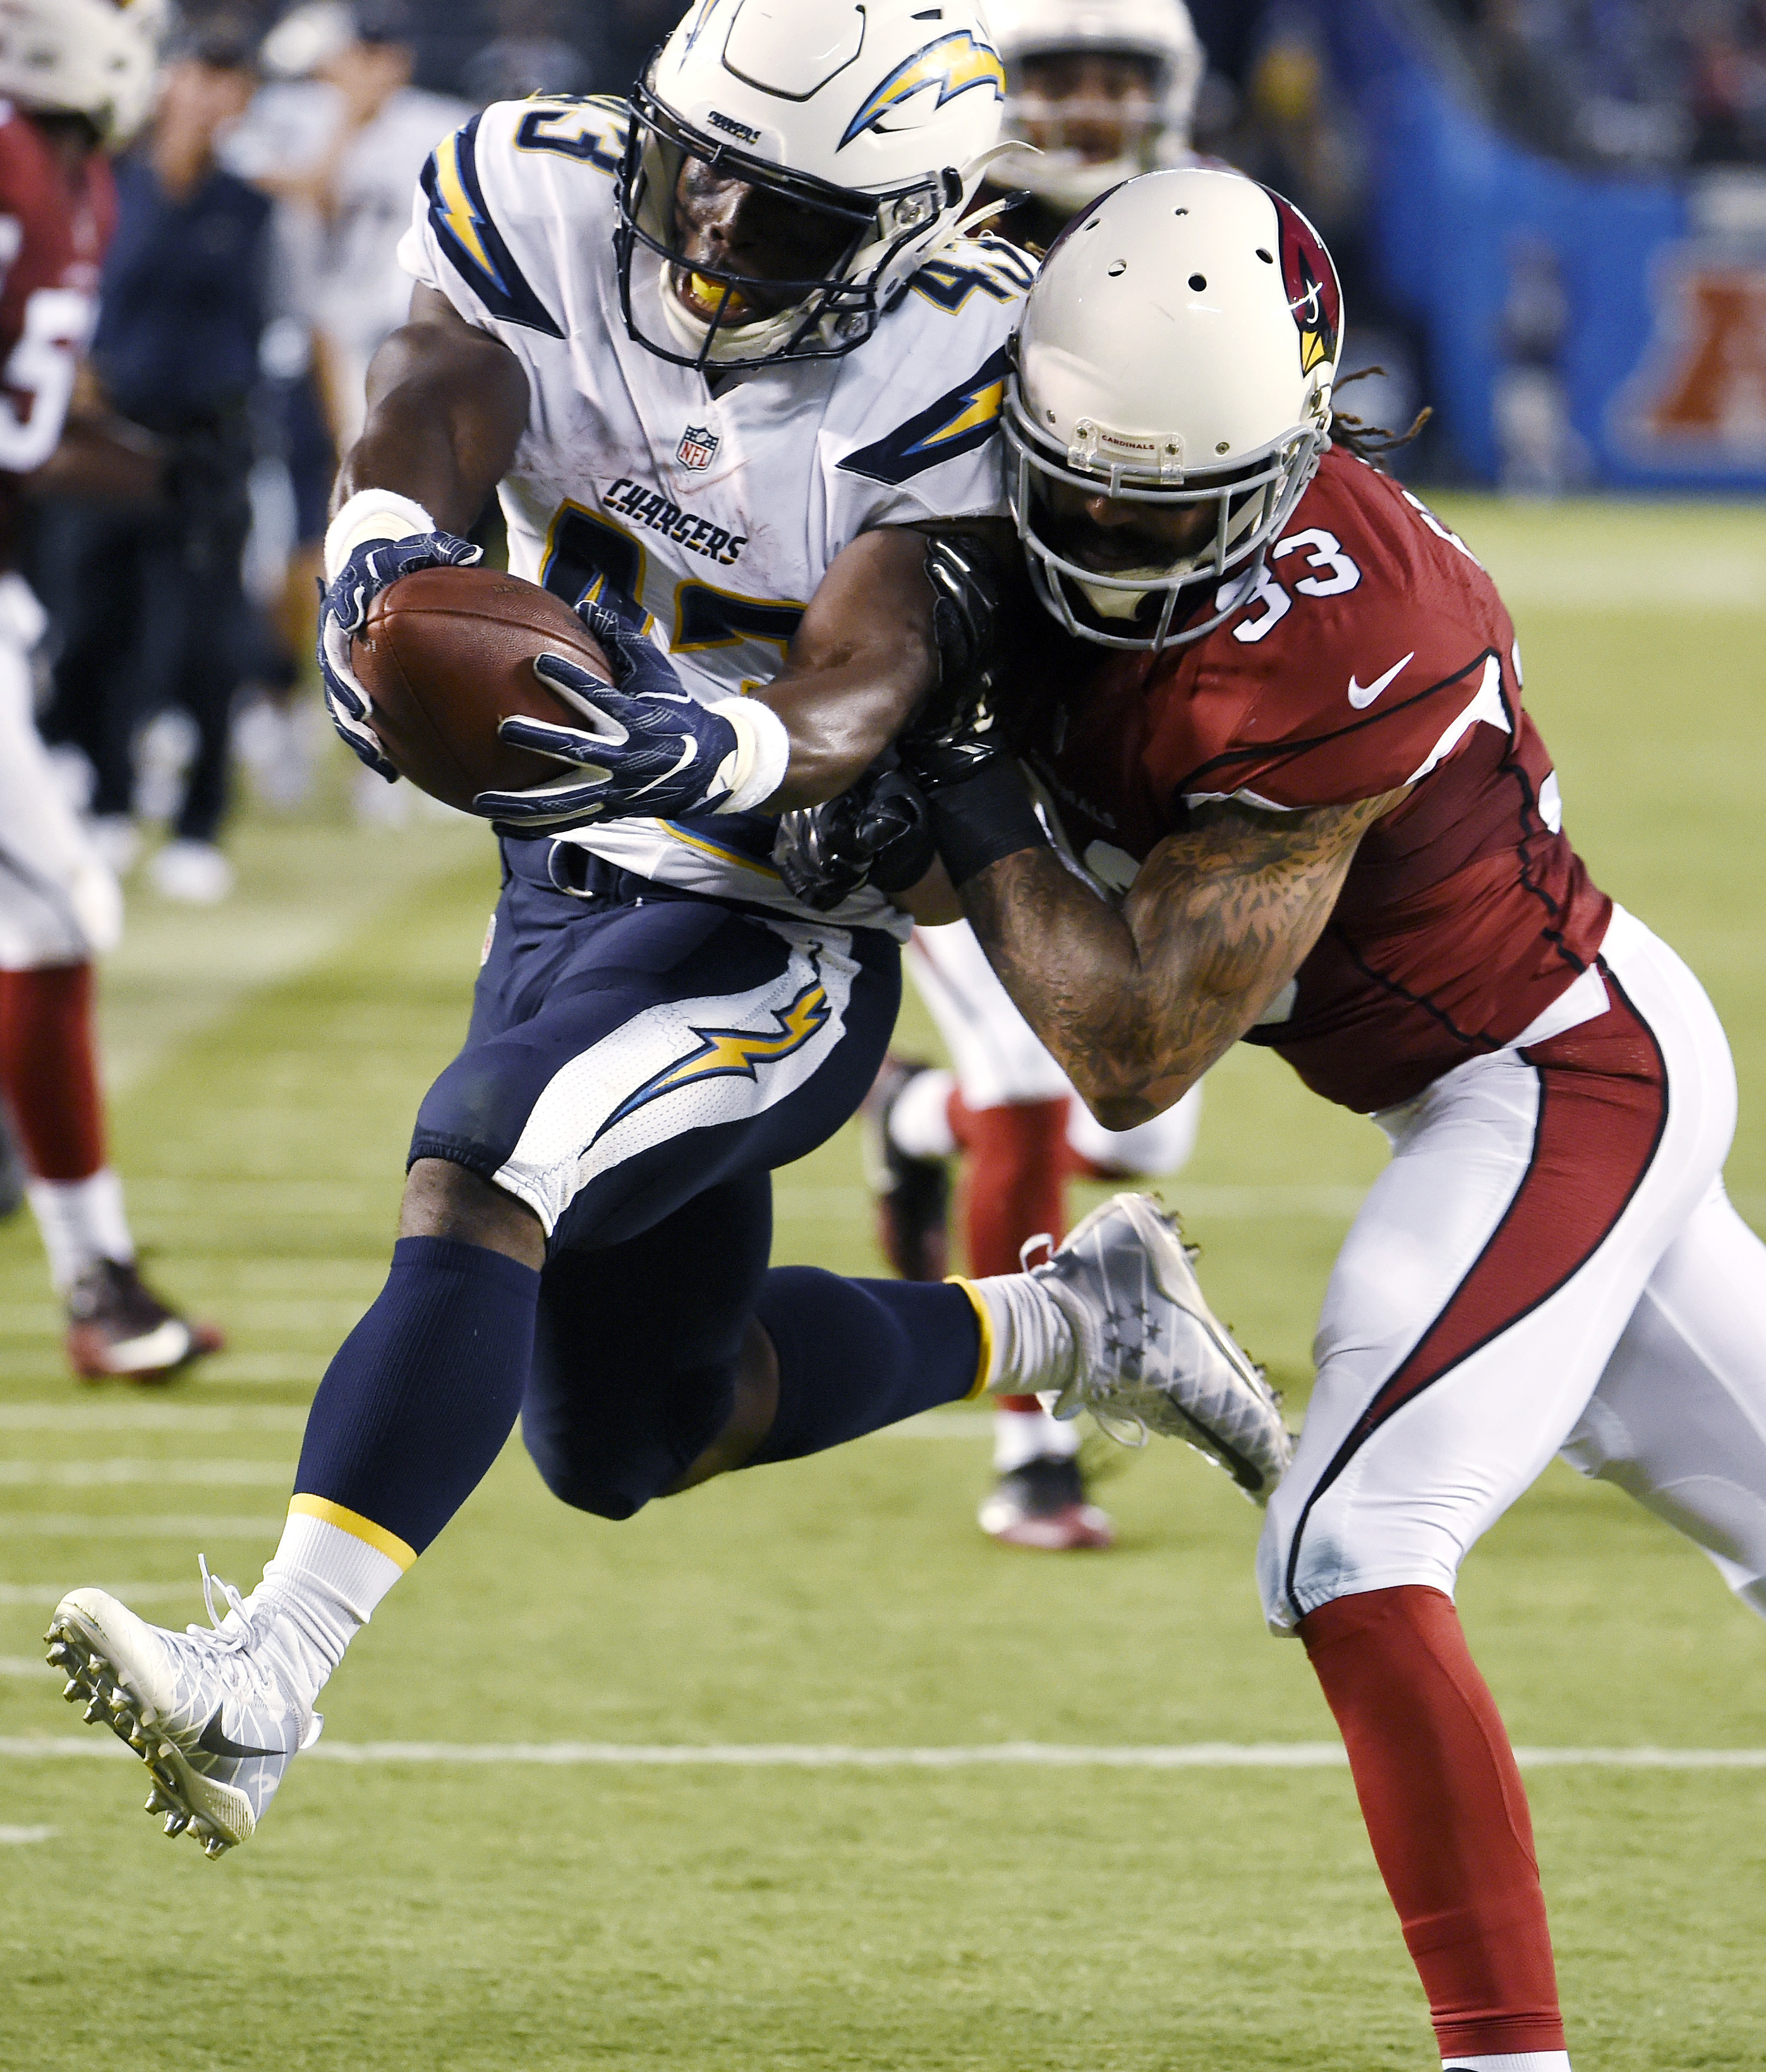 San Diego Chargers running back Branden Oliver, left, is tackled by Arizona Cardinals defensive back Matthias Farley during the second half of a preseason NFL football game, Friday, Aug. 19, 2016, in San Diego. (AP Photo/Denis Poroy)